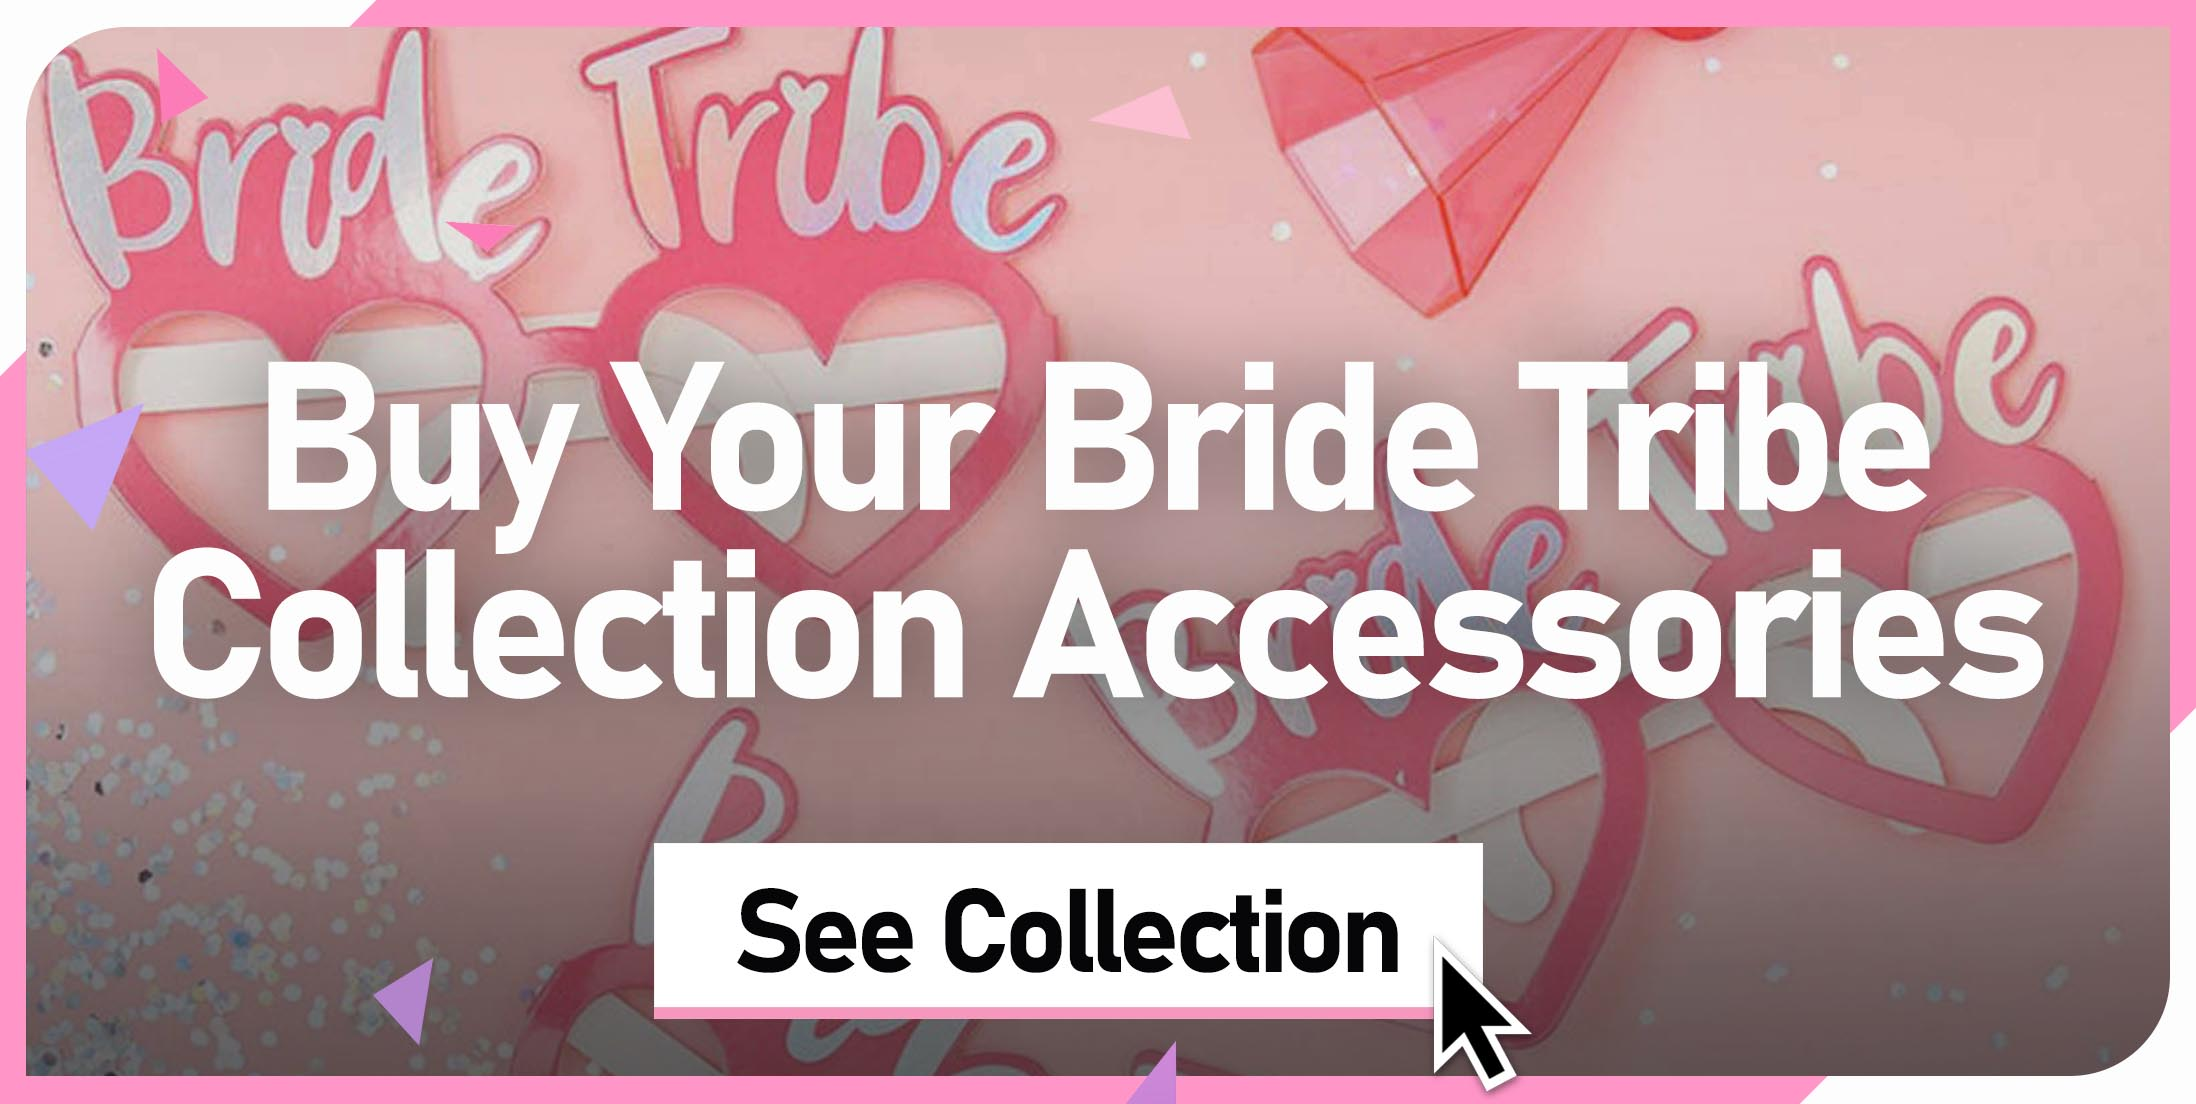 Buy Your Team Bride Collection Accessories